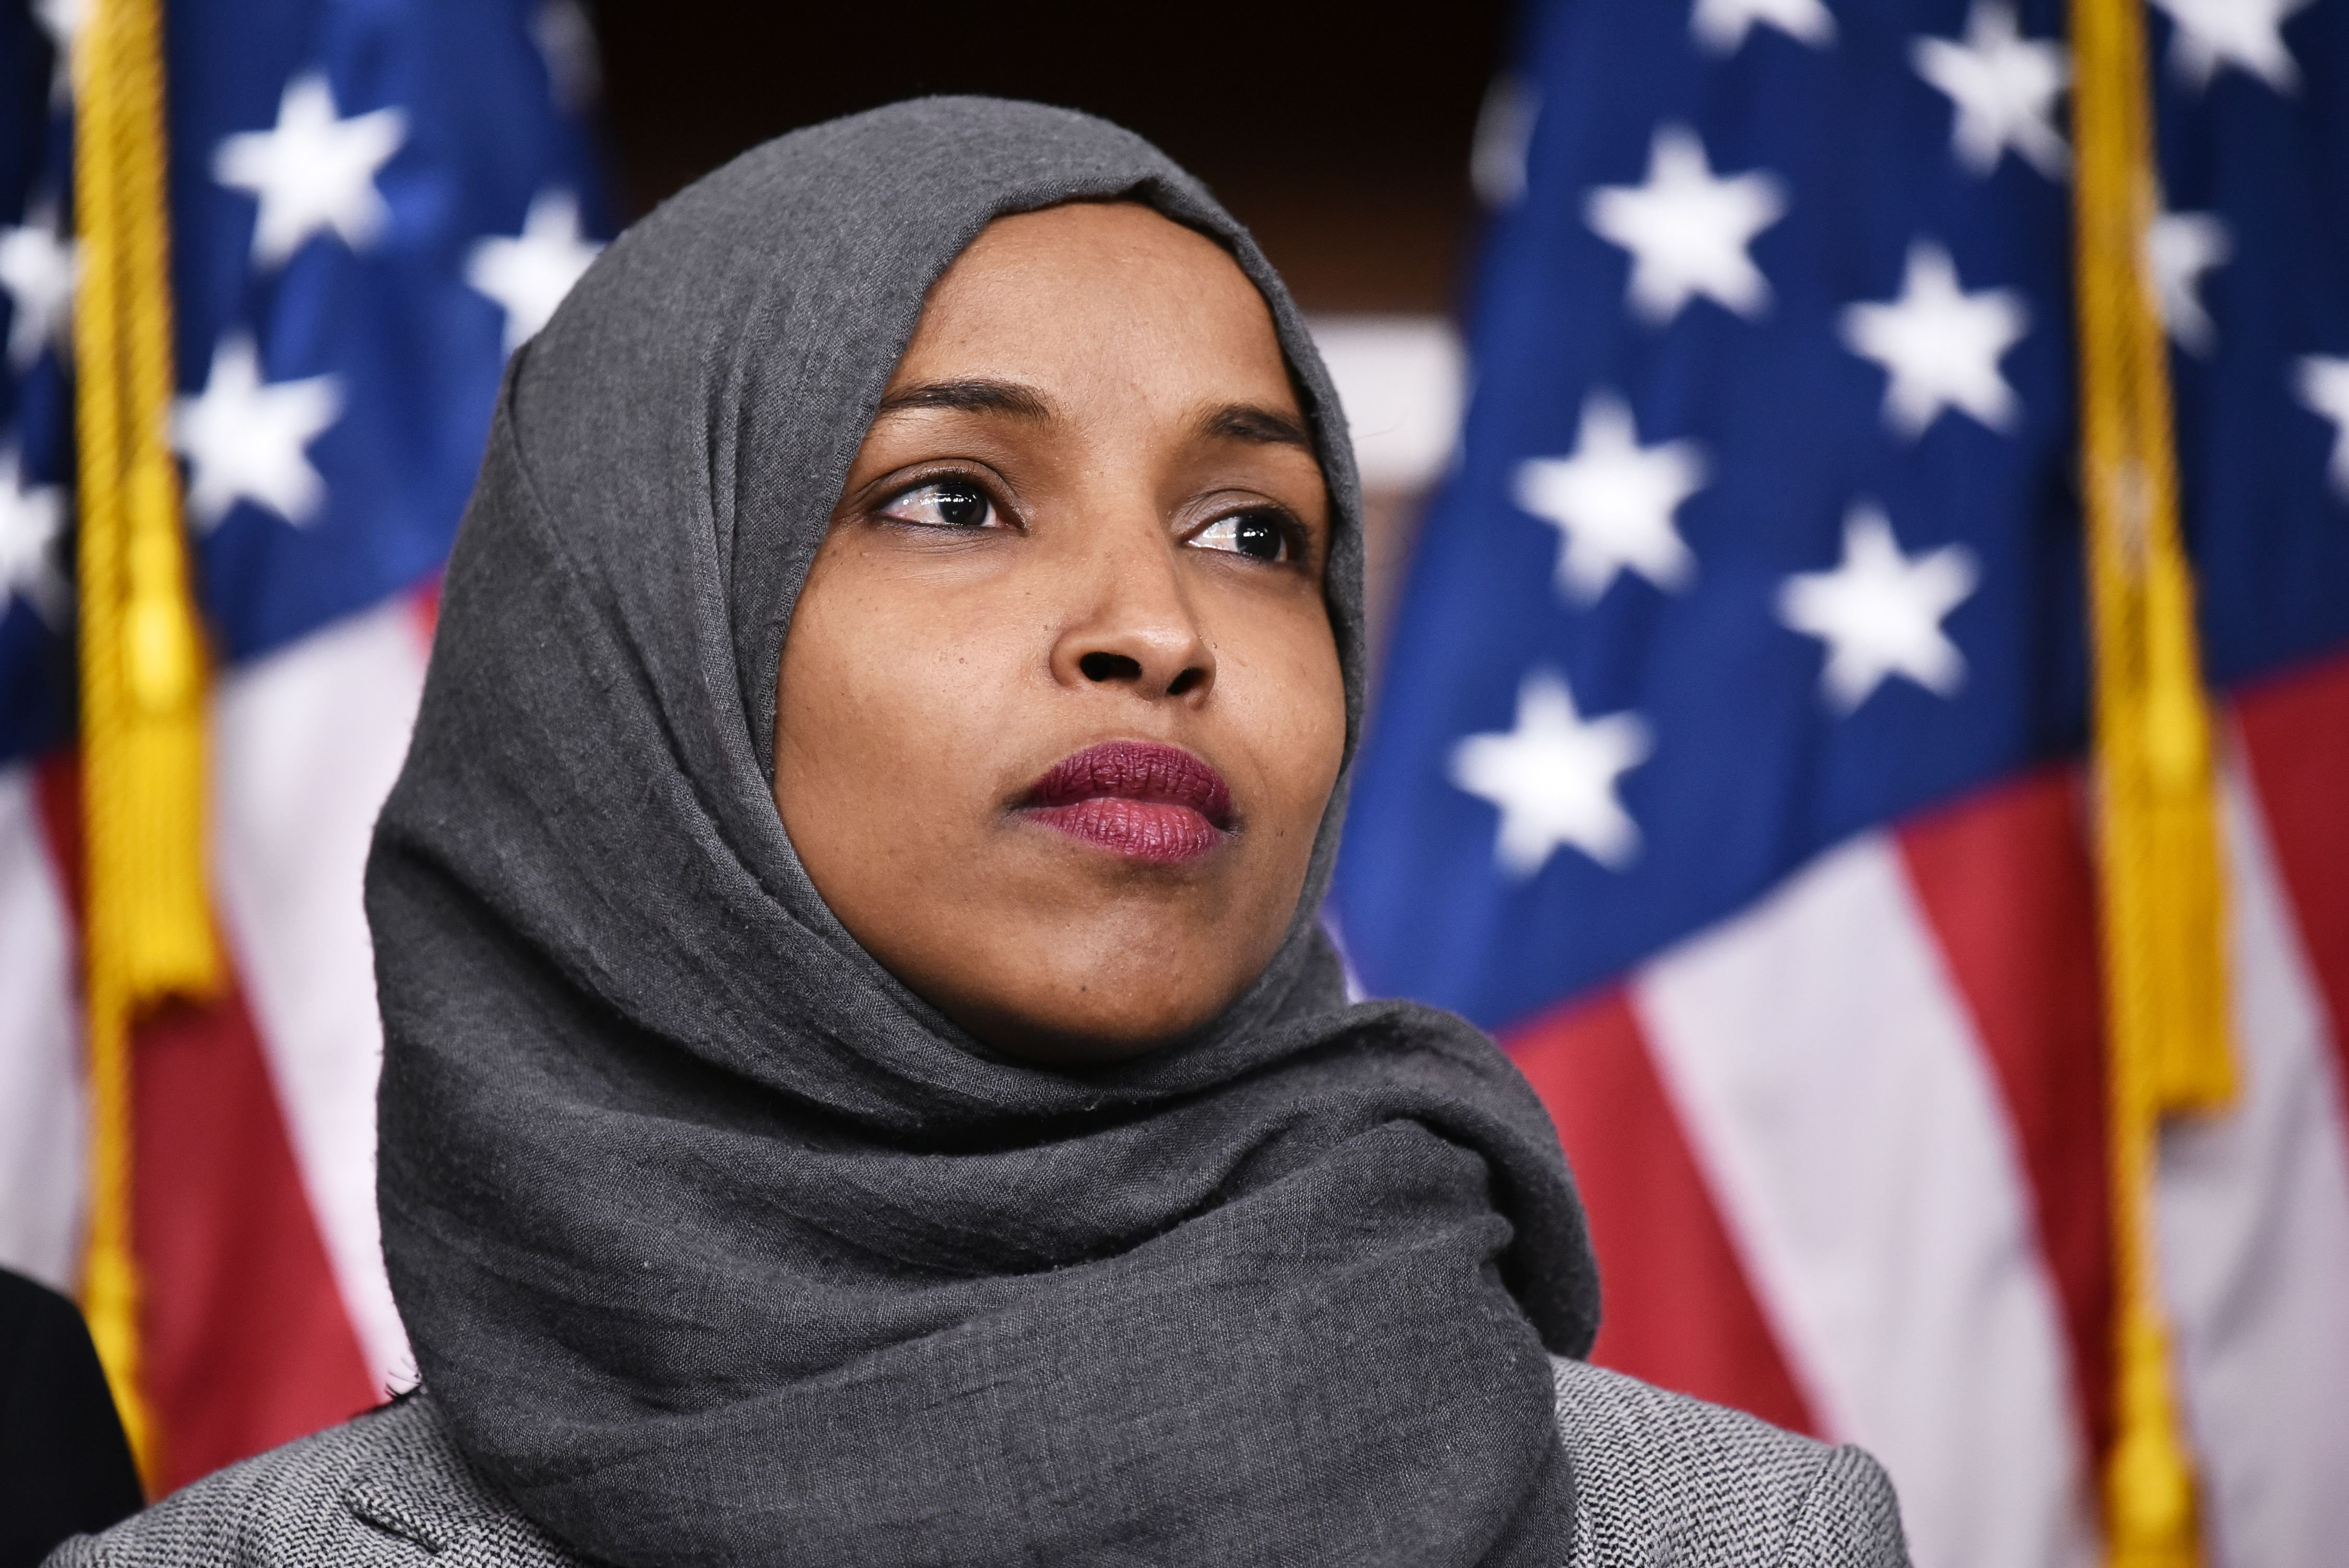 Omar did 'go back' — to Minnesota to talk health care